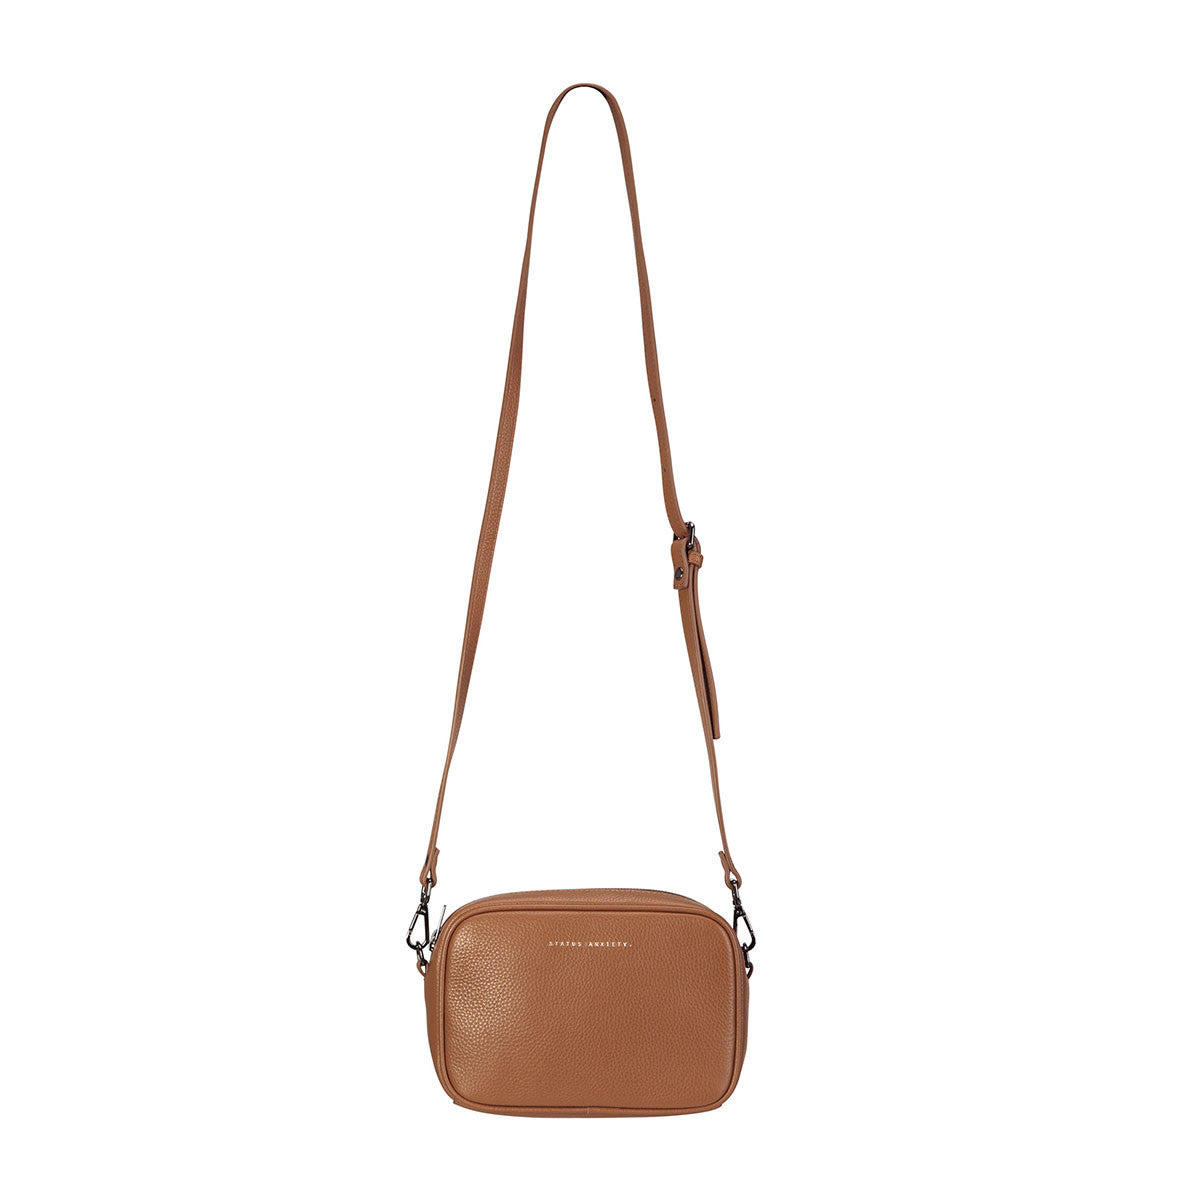 THE PLUNDER TAN LEATHER BAG FROM STATUS ANXIETY